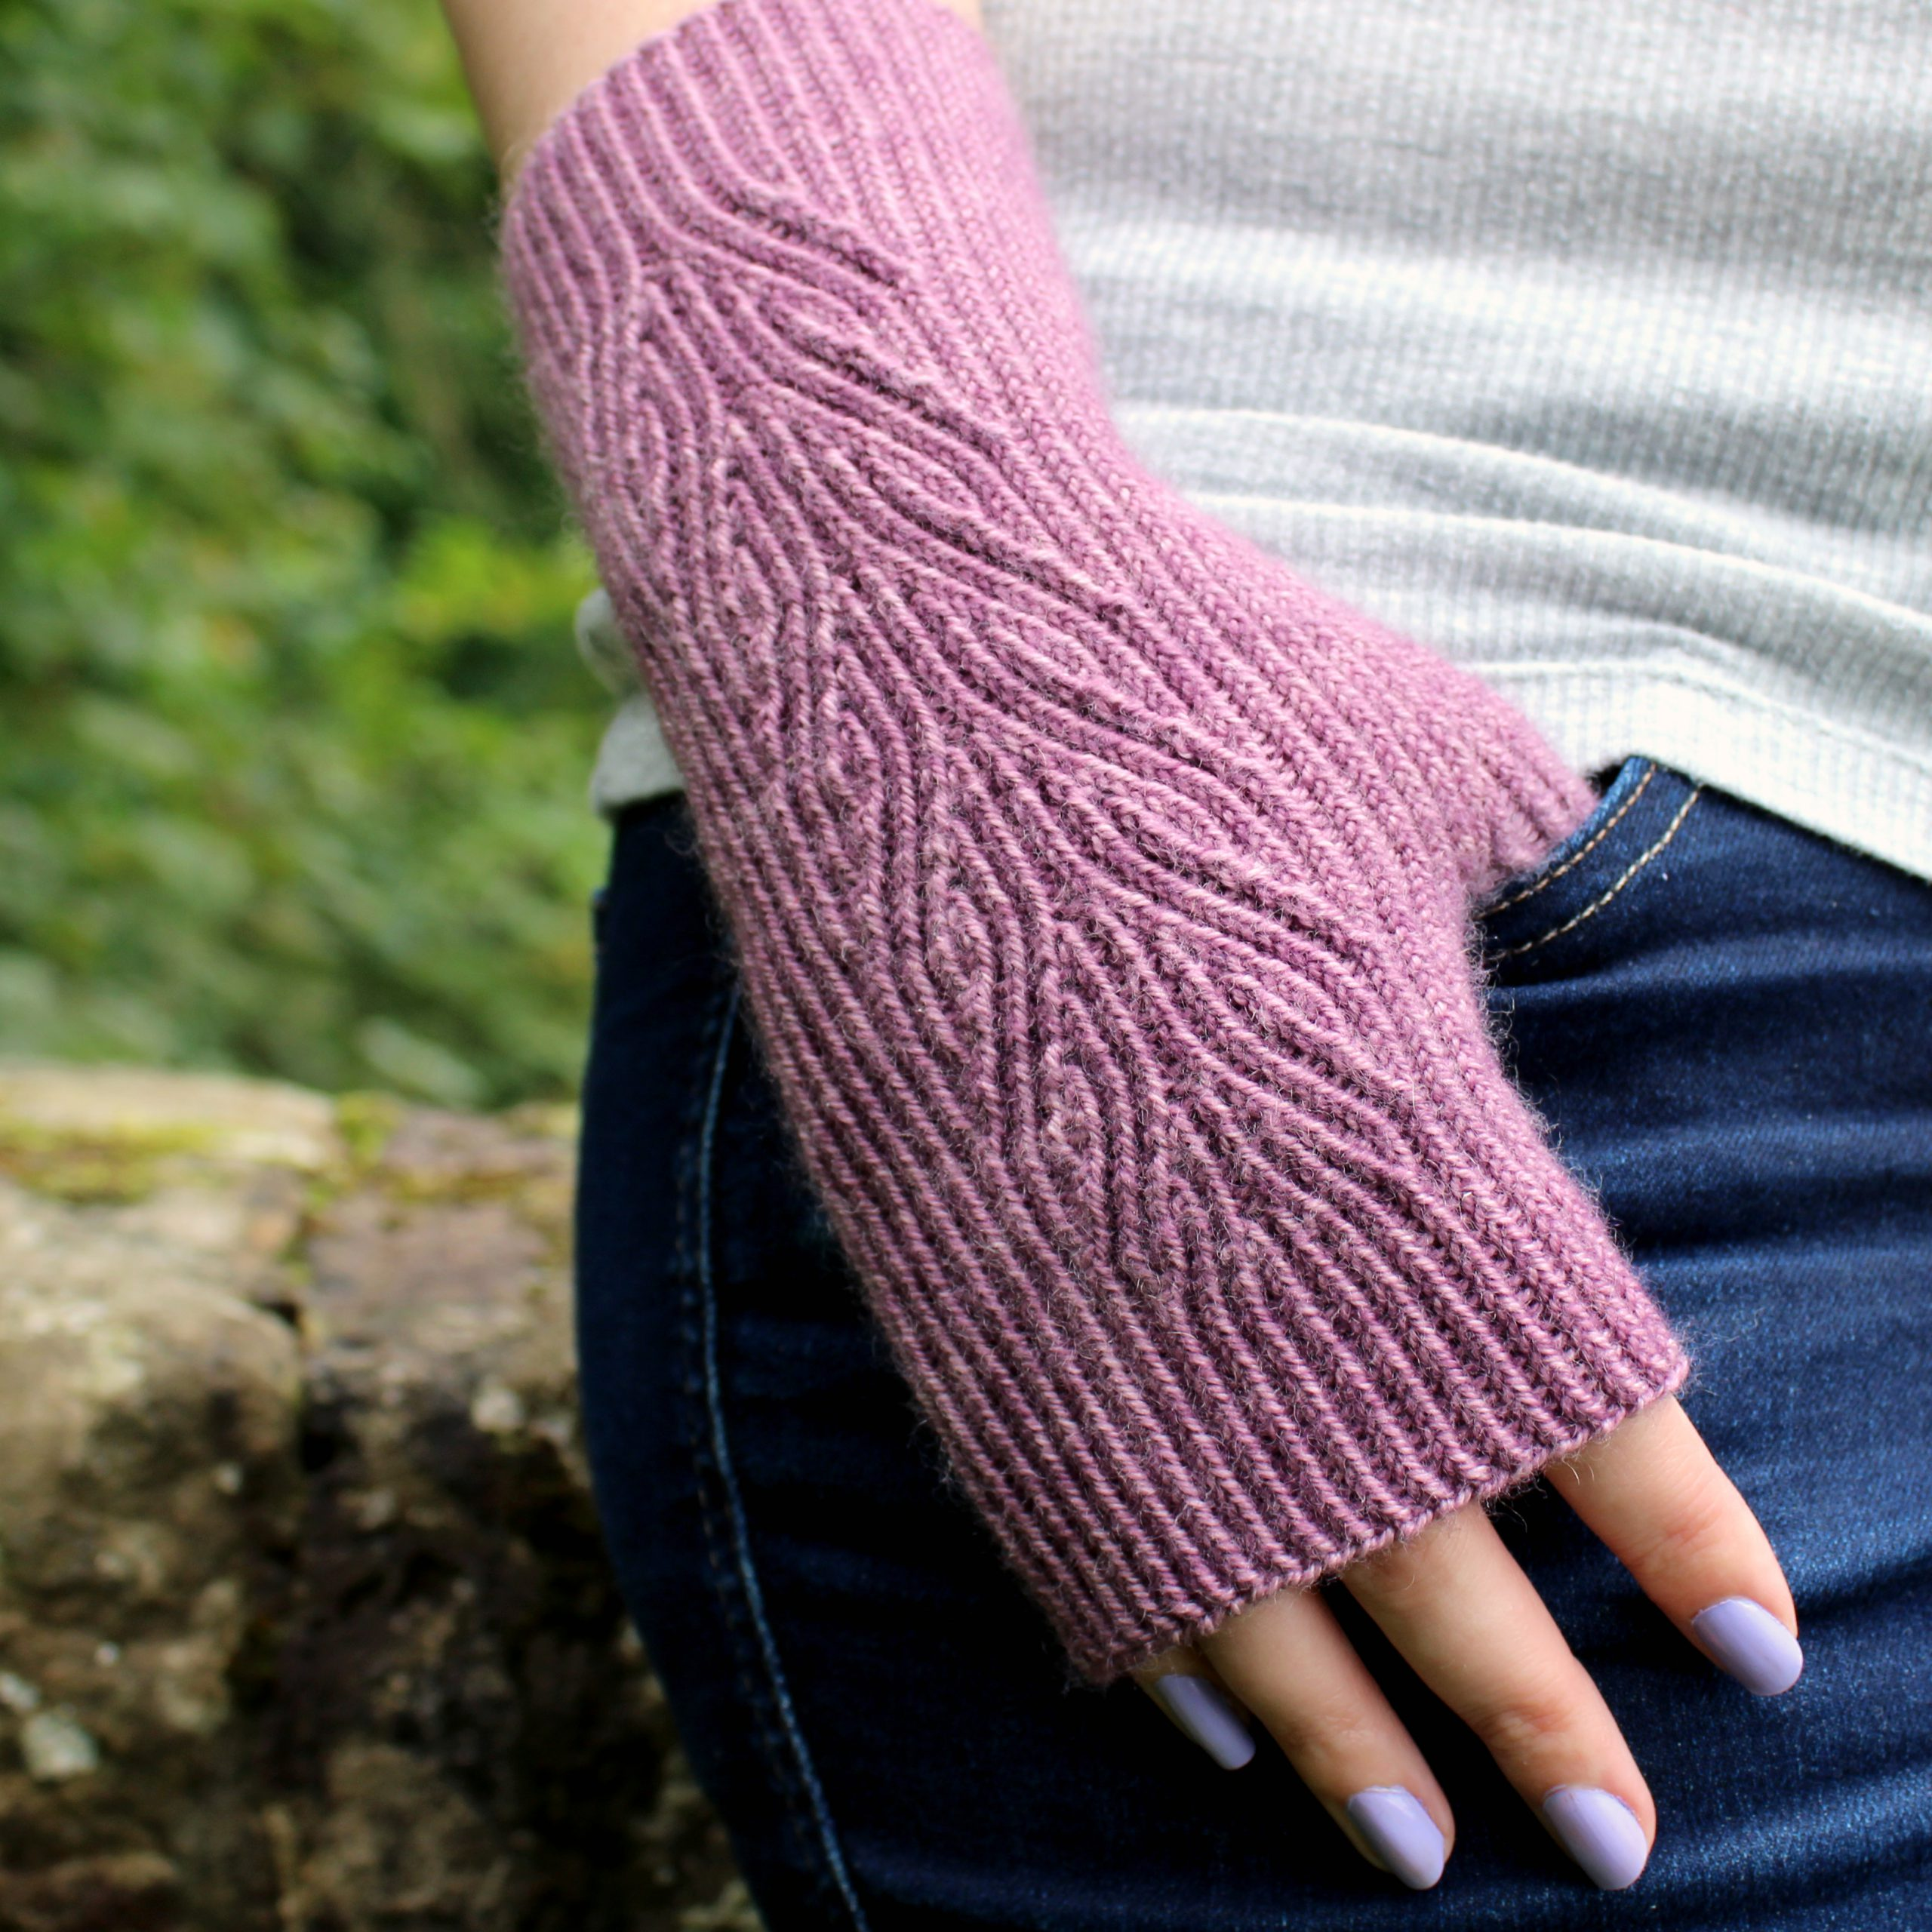 A purple fingerless mitt with a flowing faux cable pattern.